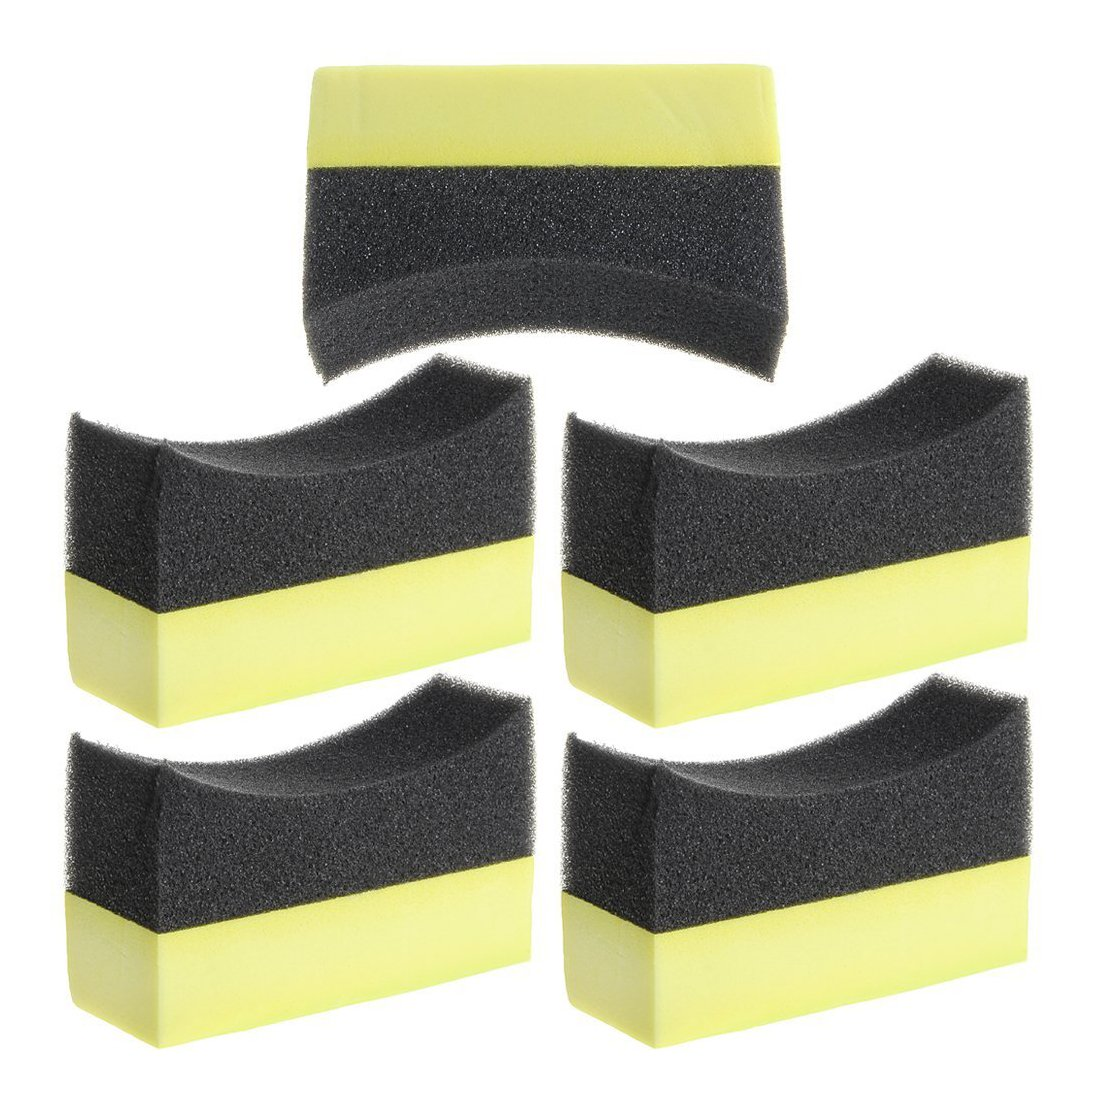 FGHGF 5x Professional Automotive Car Wheel Washer Tyre Tire Dressing Applicator Curved Foam Sponge Pad Black+yellow HITSAN INCORPORATION ATM-3518